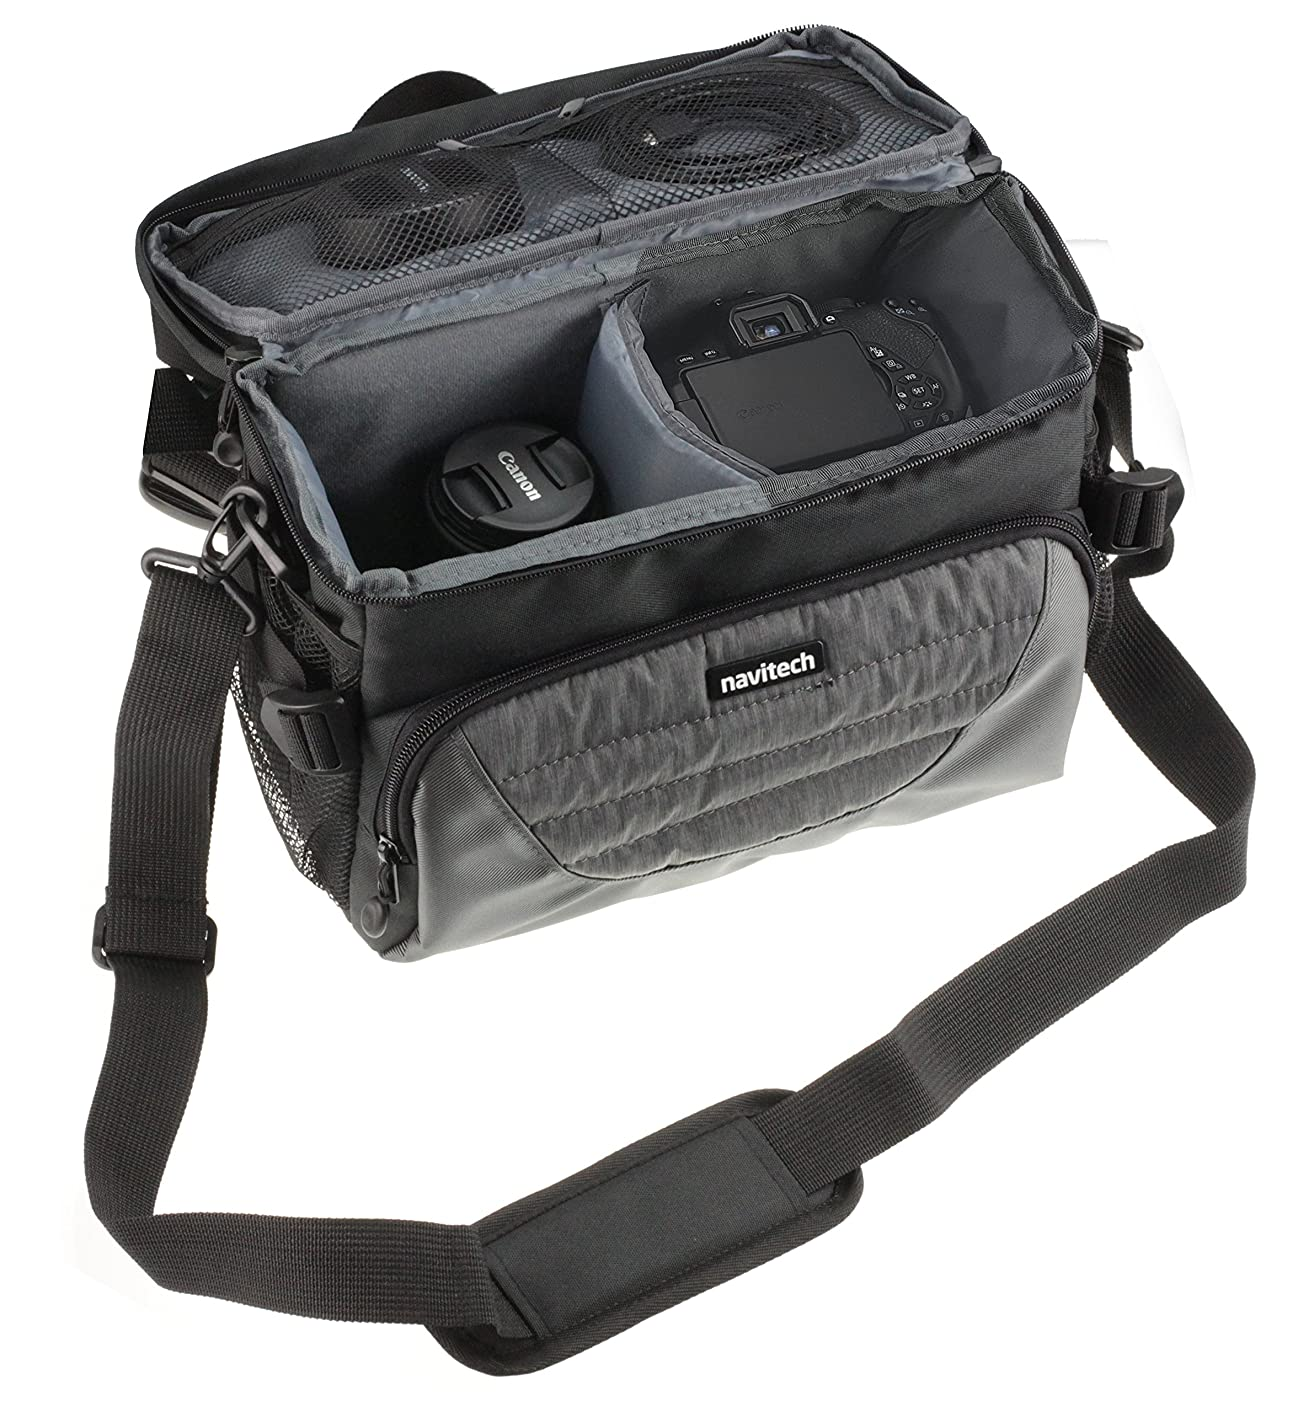 Navitech Grey DSLR & Lens Camera Bag Case Cover Compatible with The Nikon Coolpix P1000